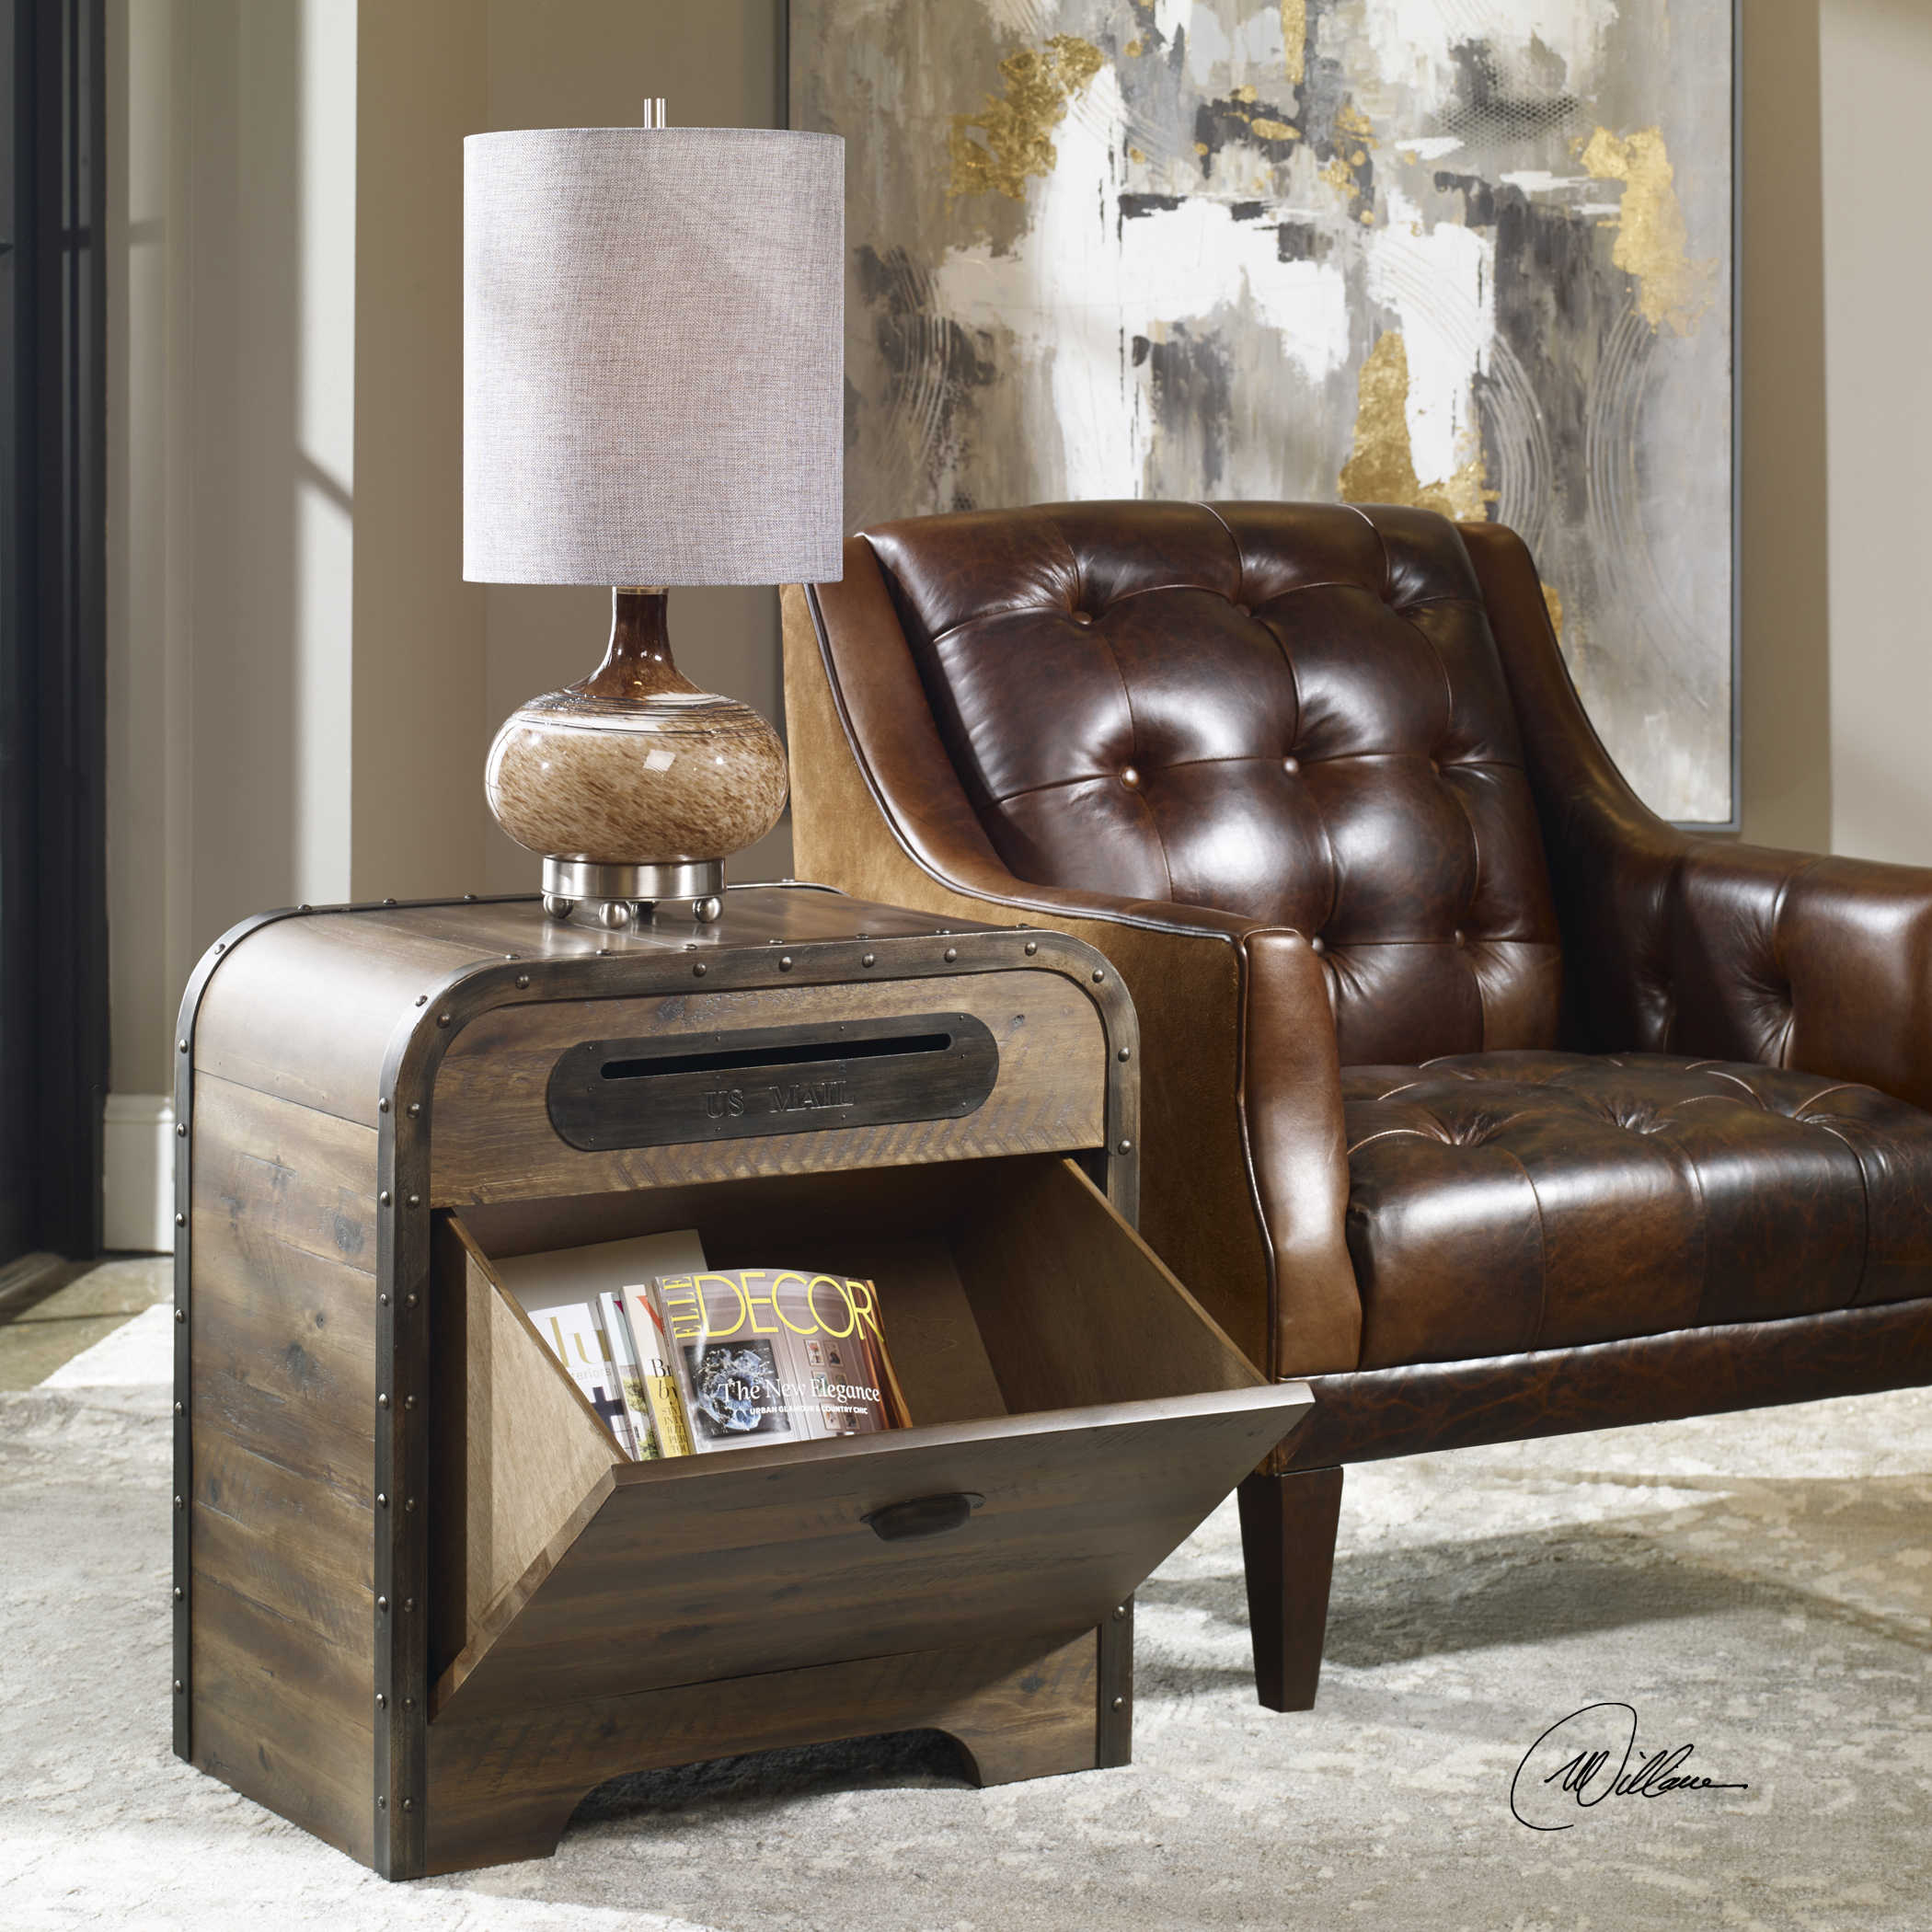 uttermost benjamin mail accent table behind couch bath and beyond ice cream maker brown end tables with drawers marble coffee target kindle fire beacon hill furniture runner gray